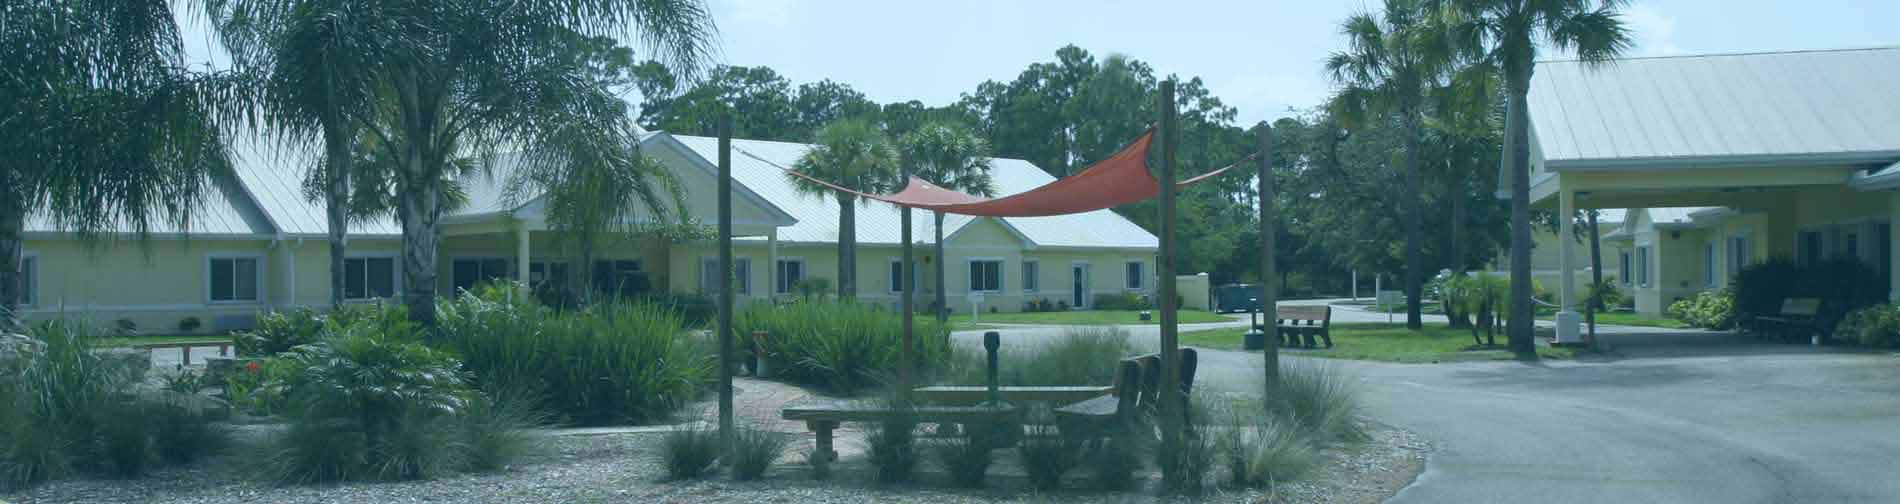 Drug and Alcohol Rehab Facility in Florida